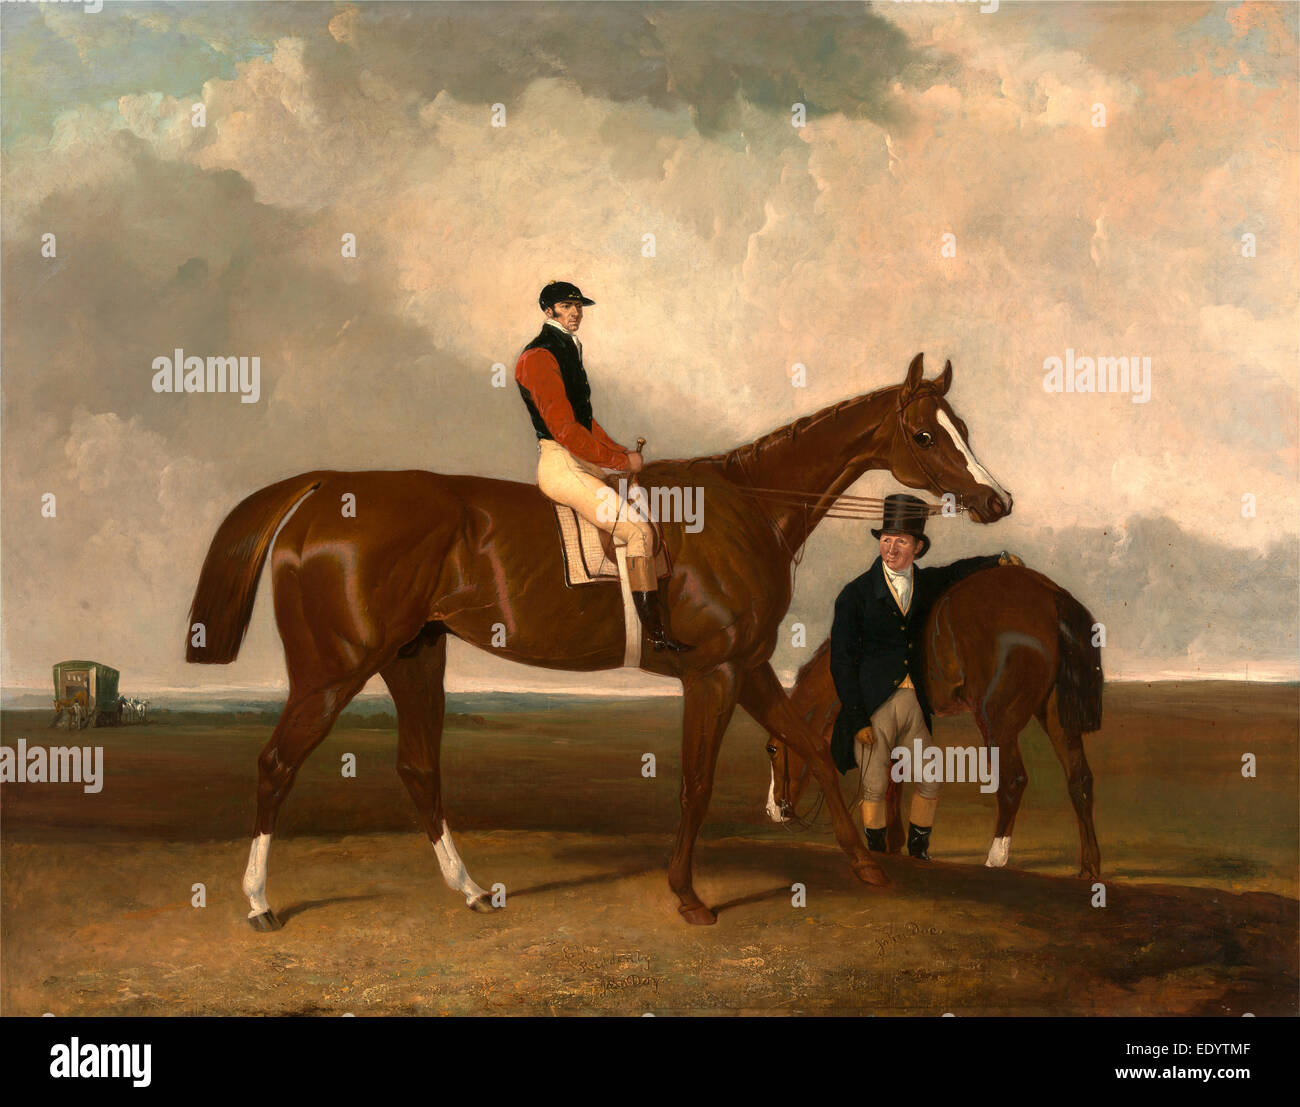 Elis' at Doncaster, Ridden by John Day, with his Van in the Background Inscribed - Stock Image